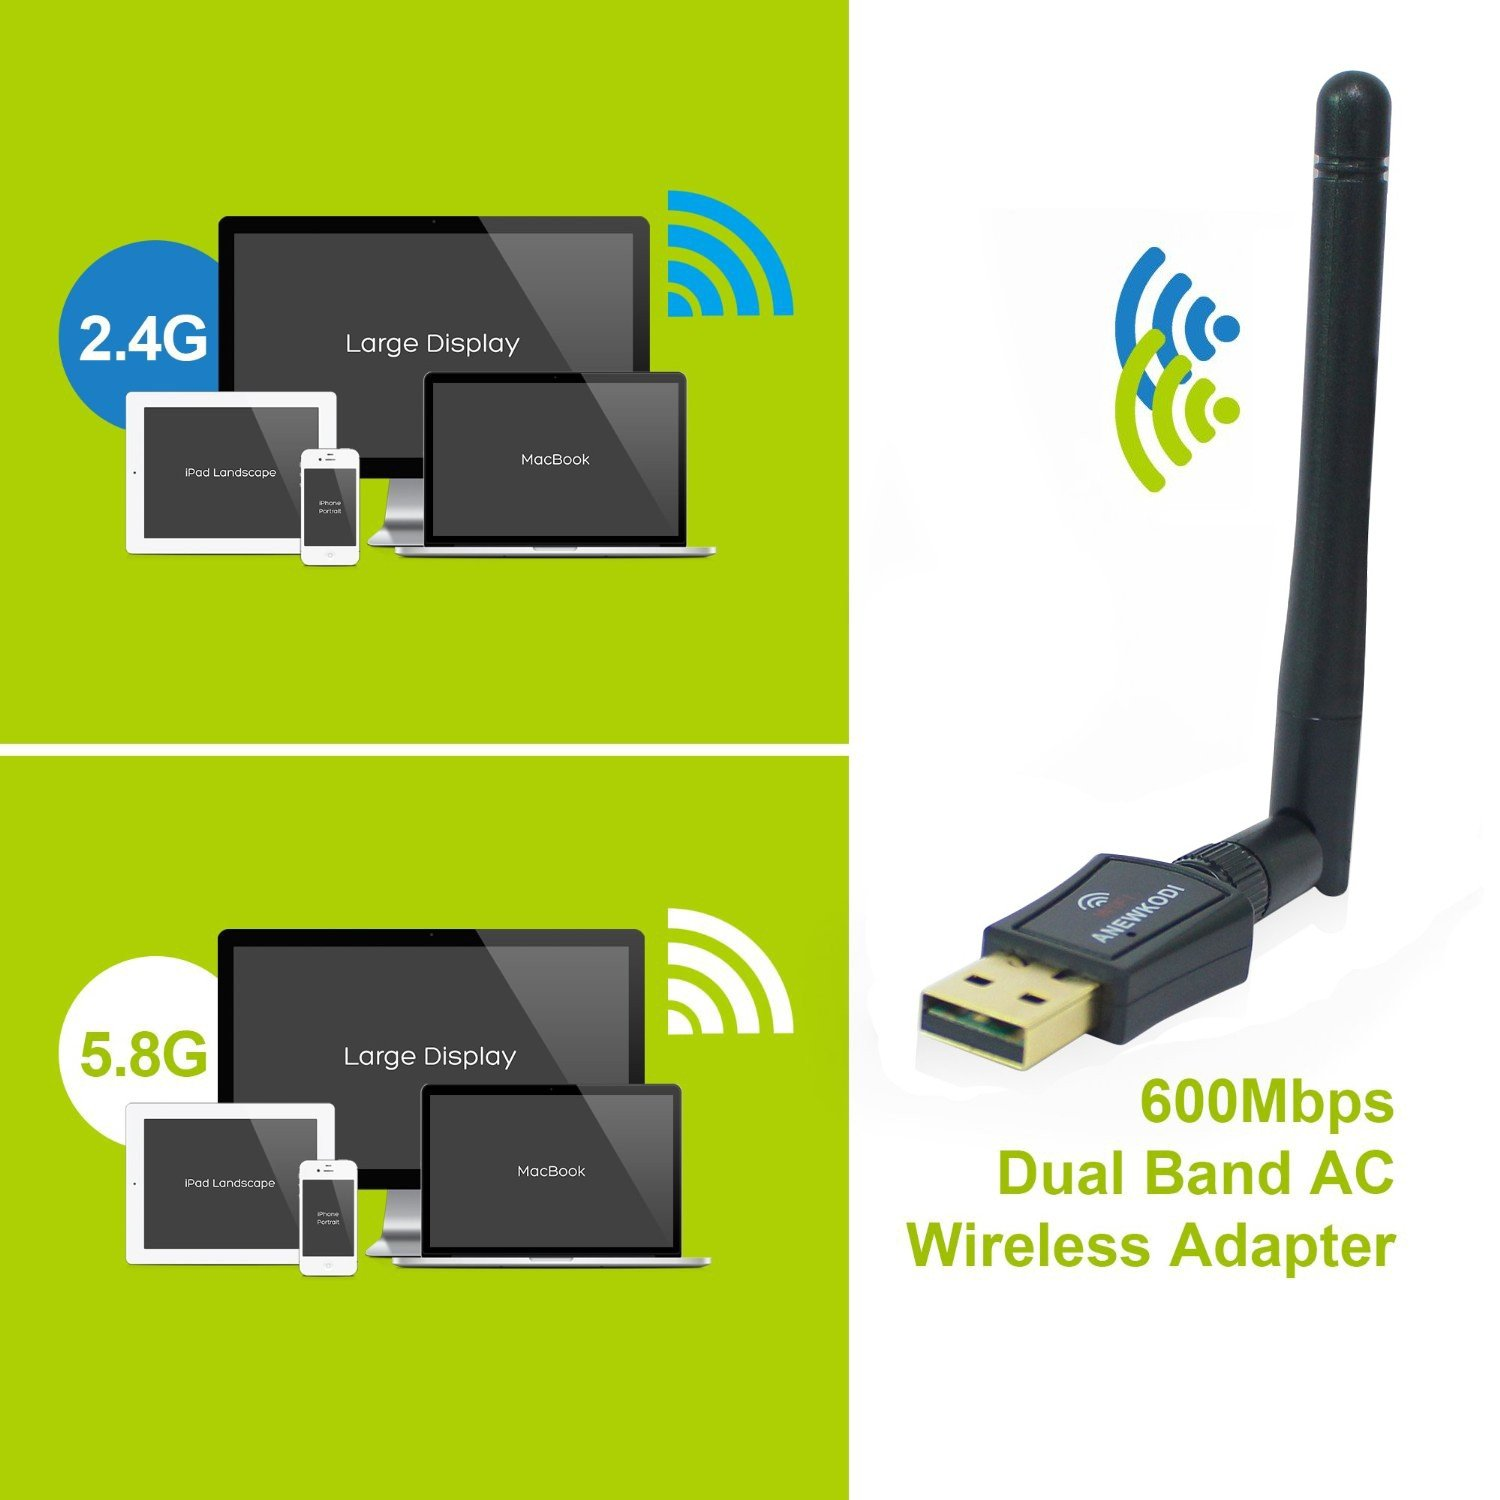 ANEWKODI AC600 Wireless Adapter